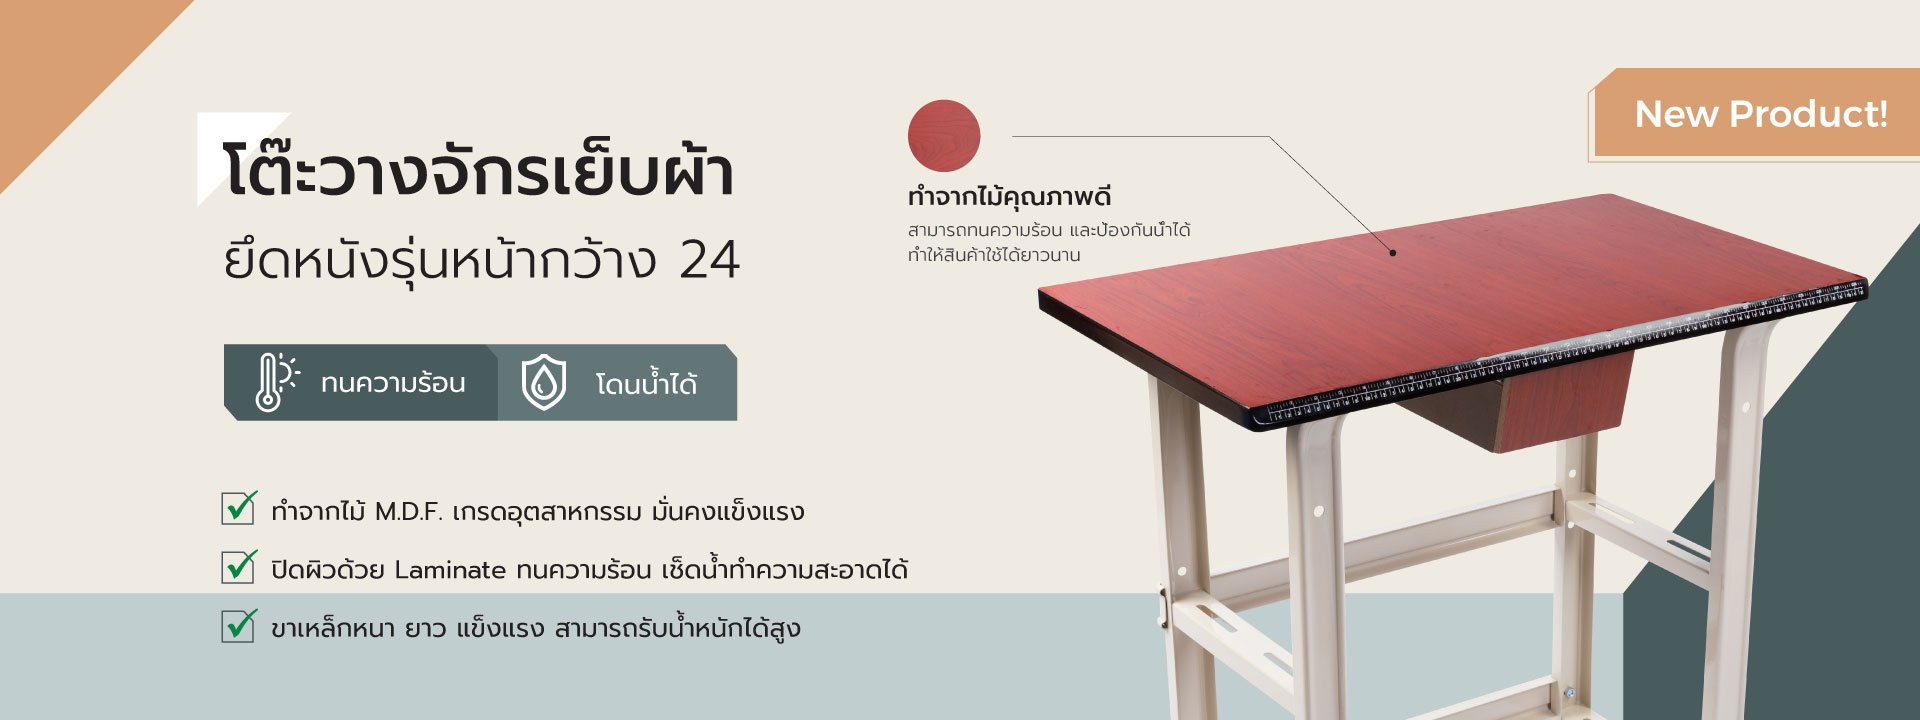 Chuno-Banner-website3